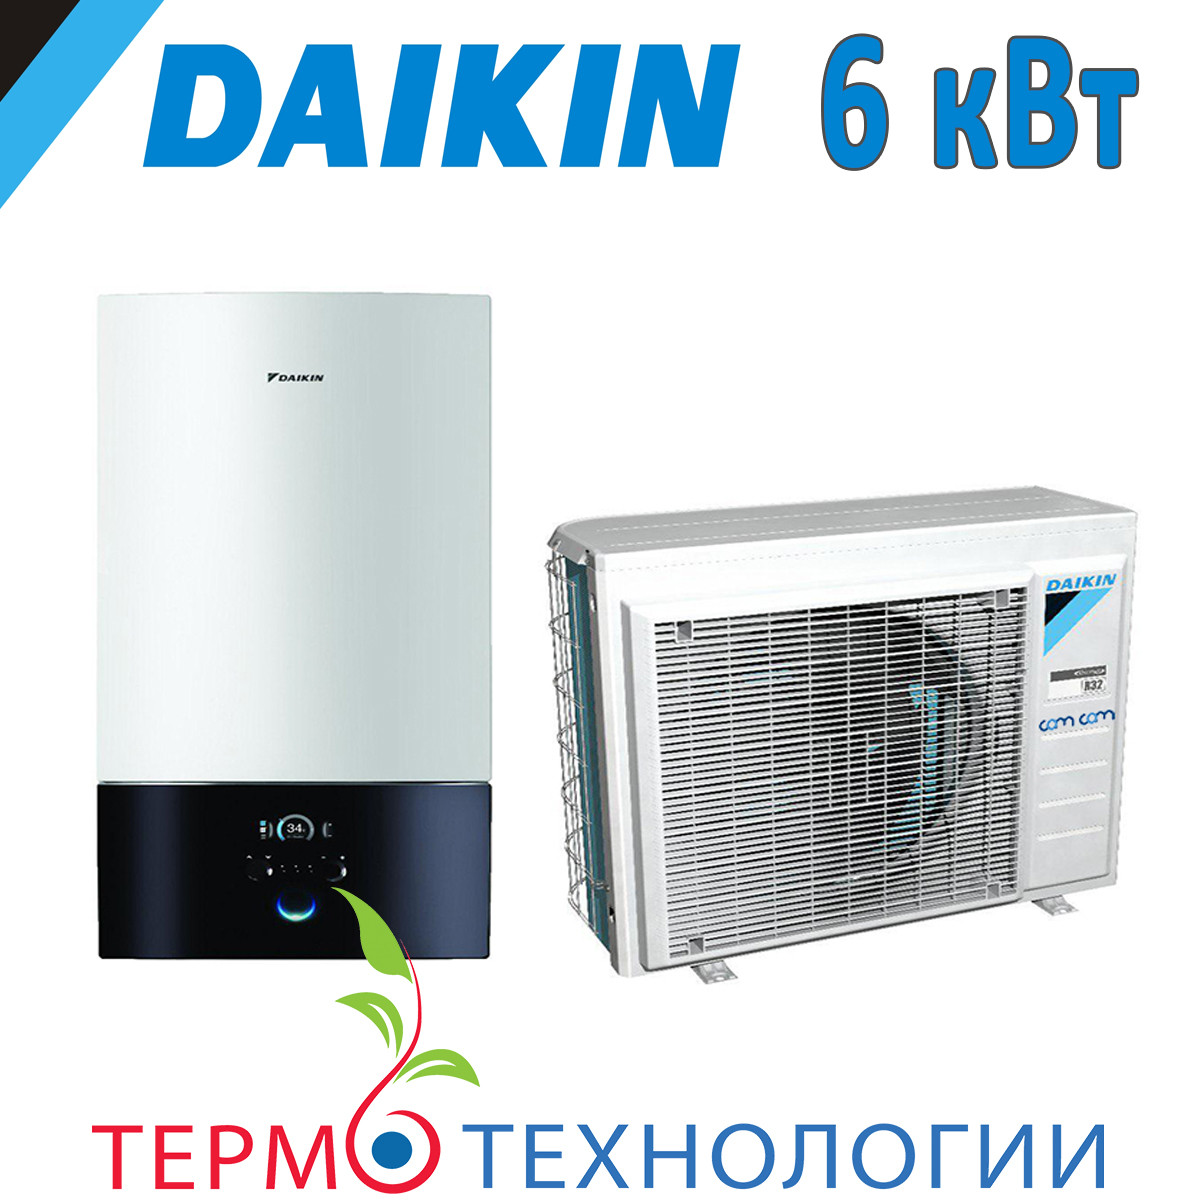 Тепловой насос воздух-вода Daikin Altherma 3 split 6 кВт